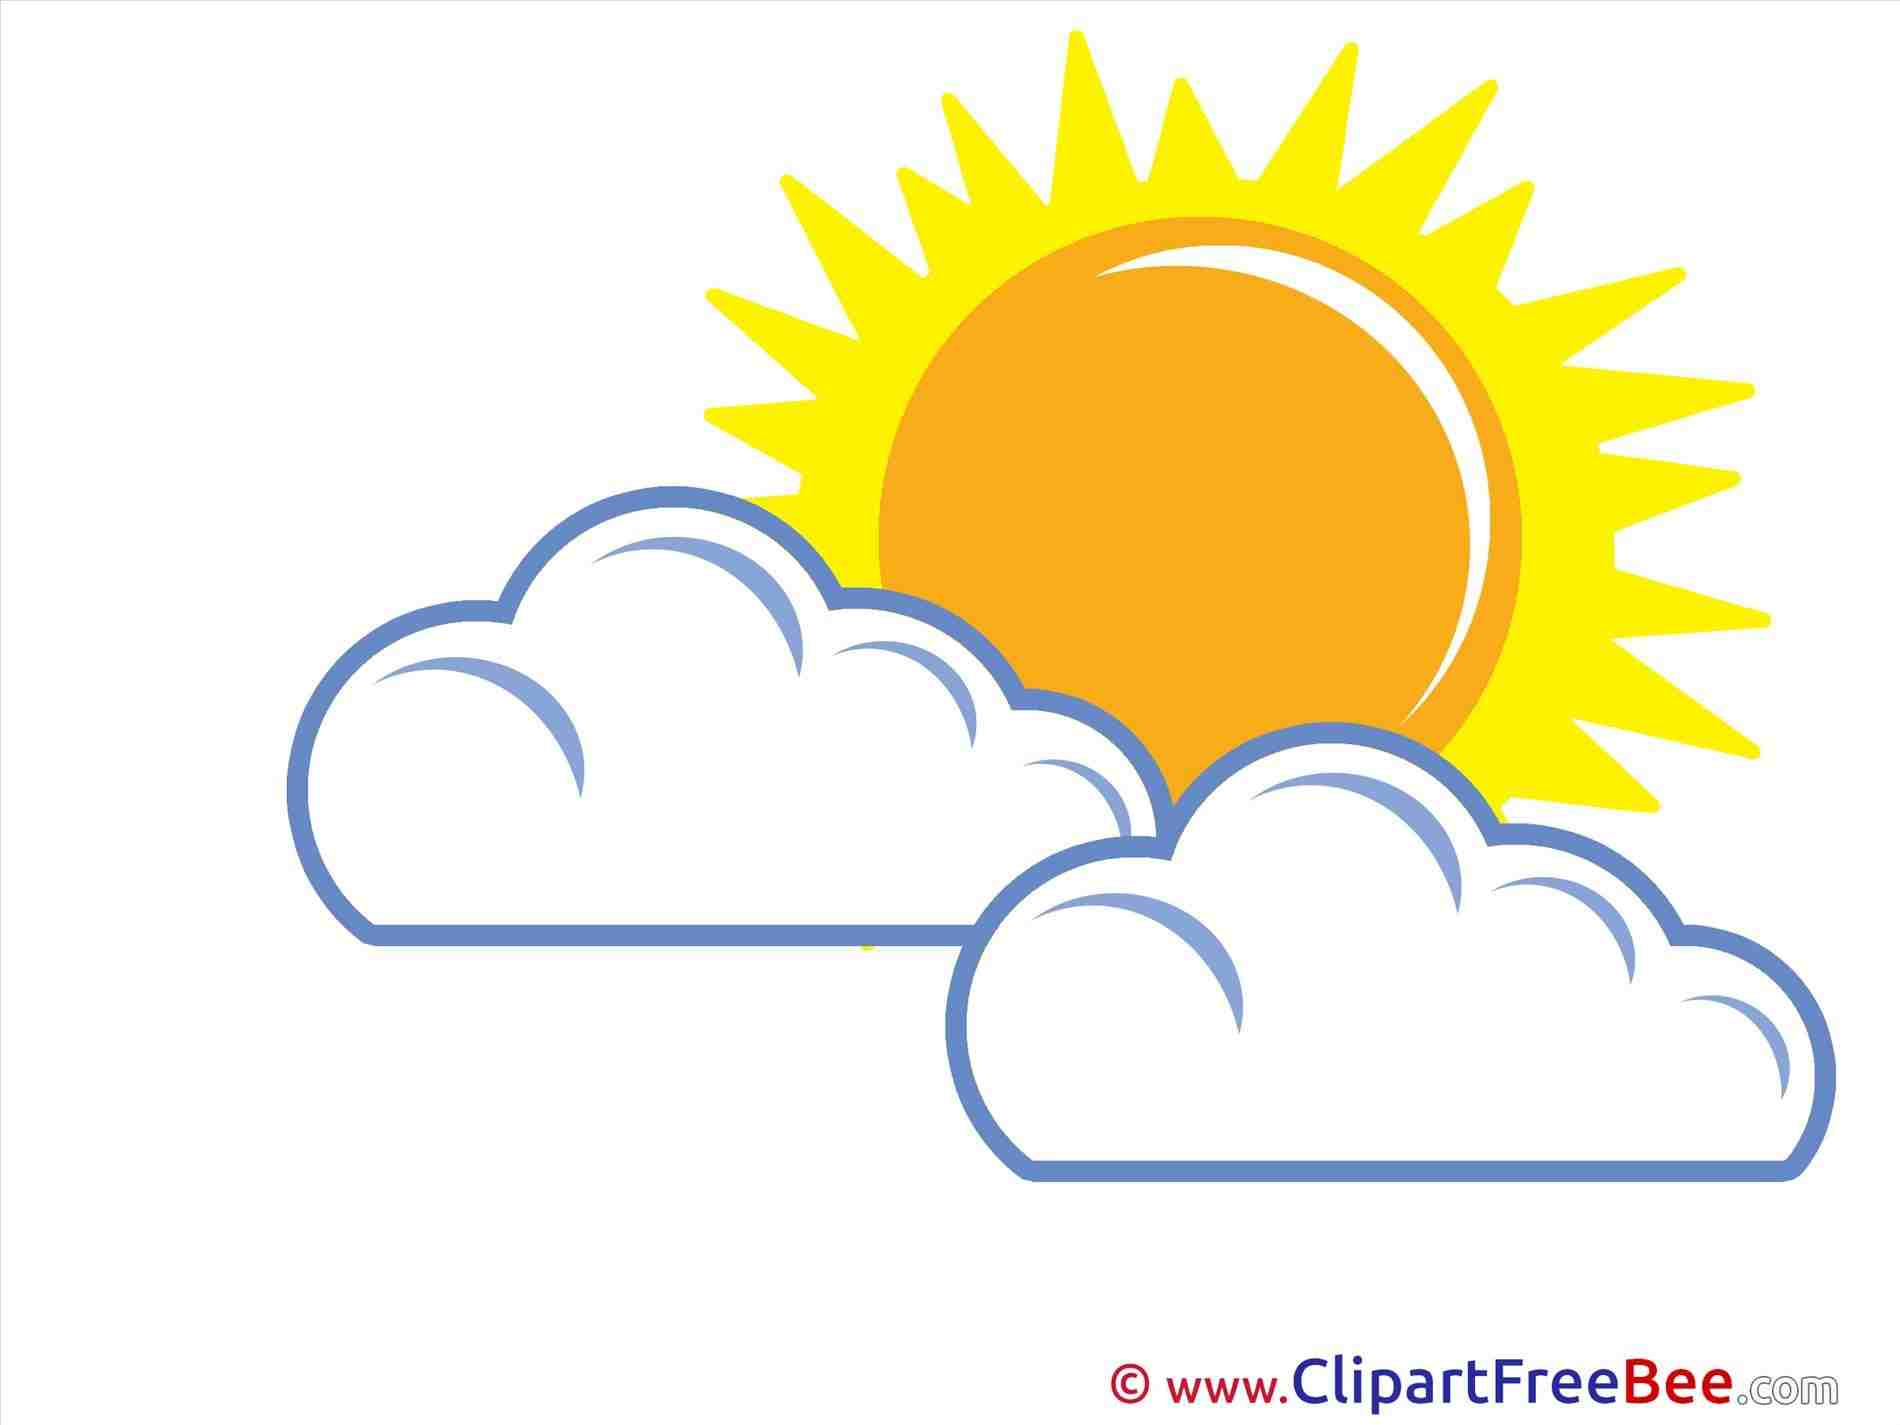 Warm Warm Weather Clipart weather sun clouds » Clipart Station.